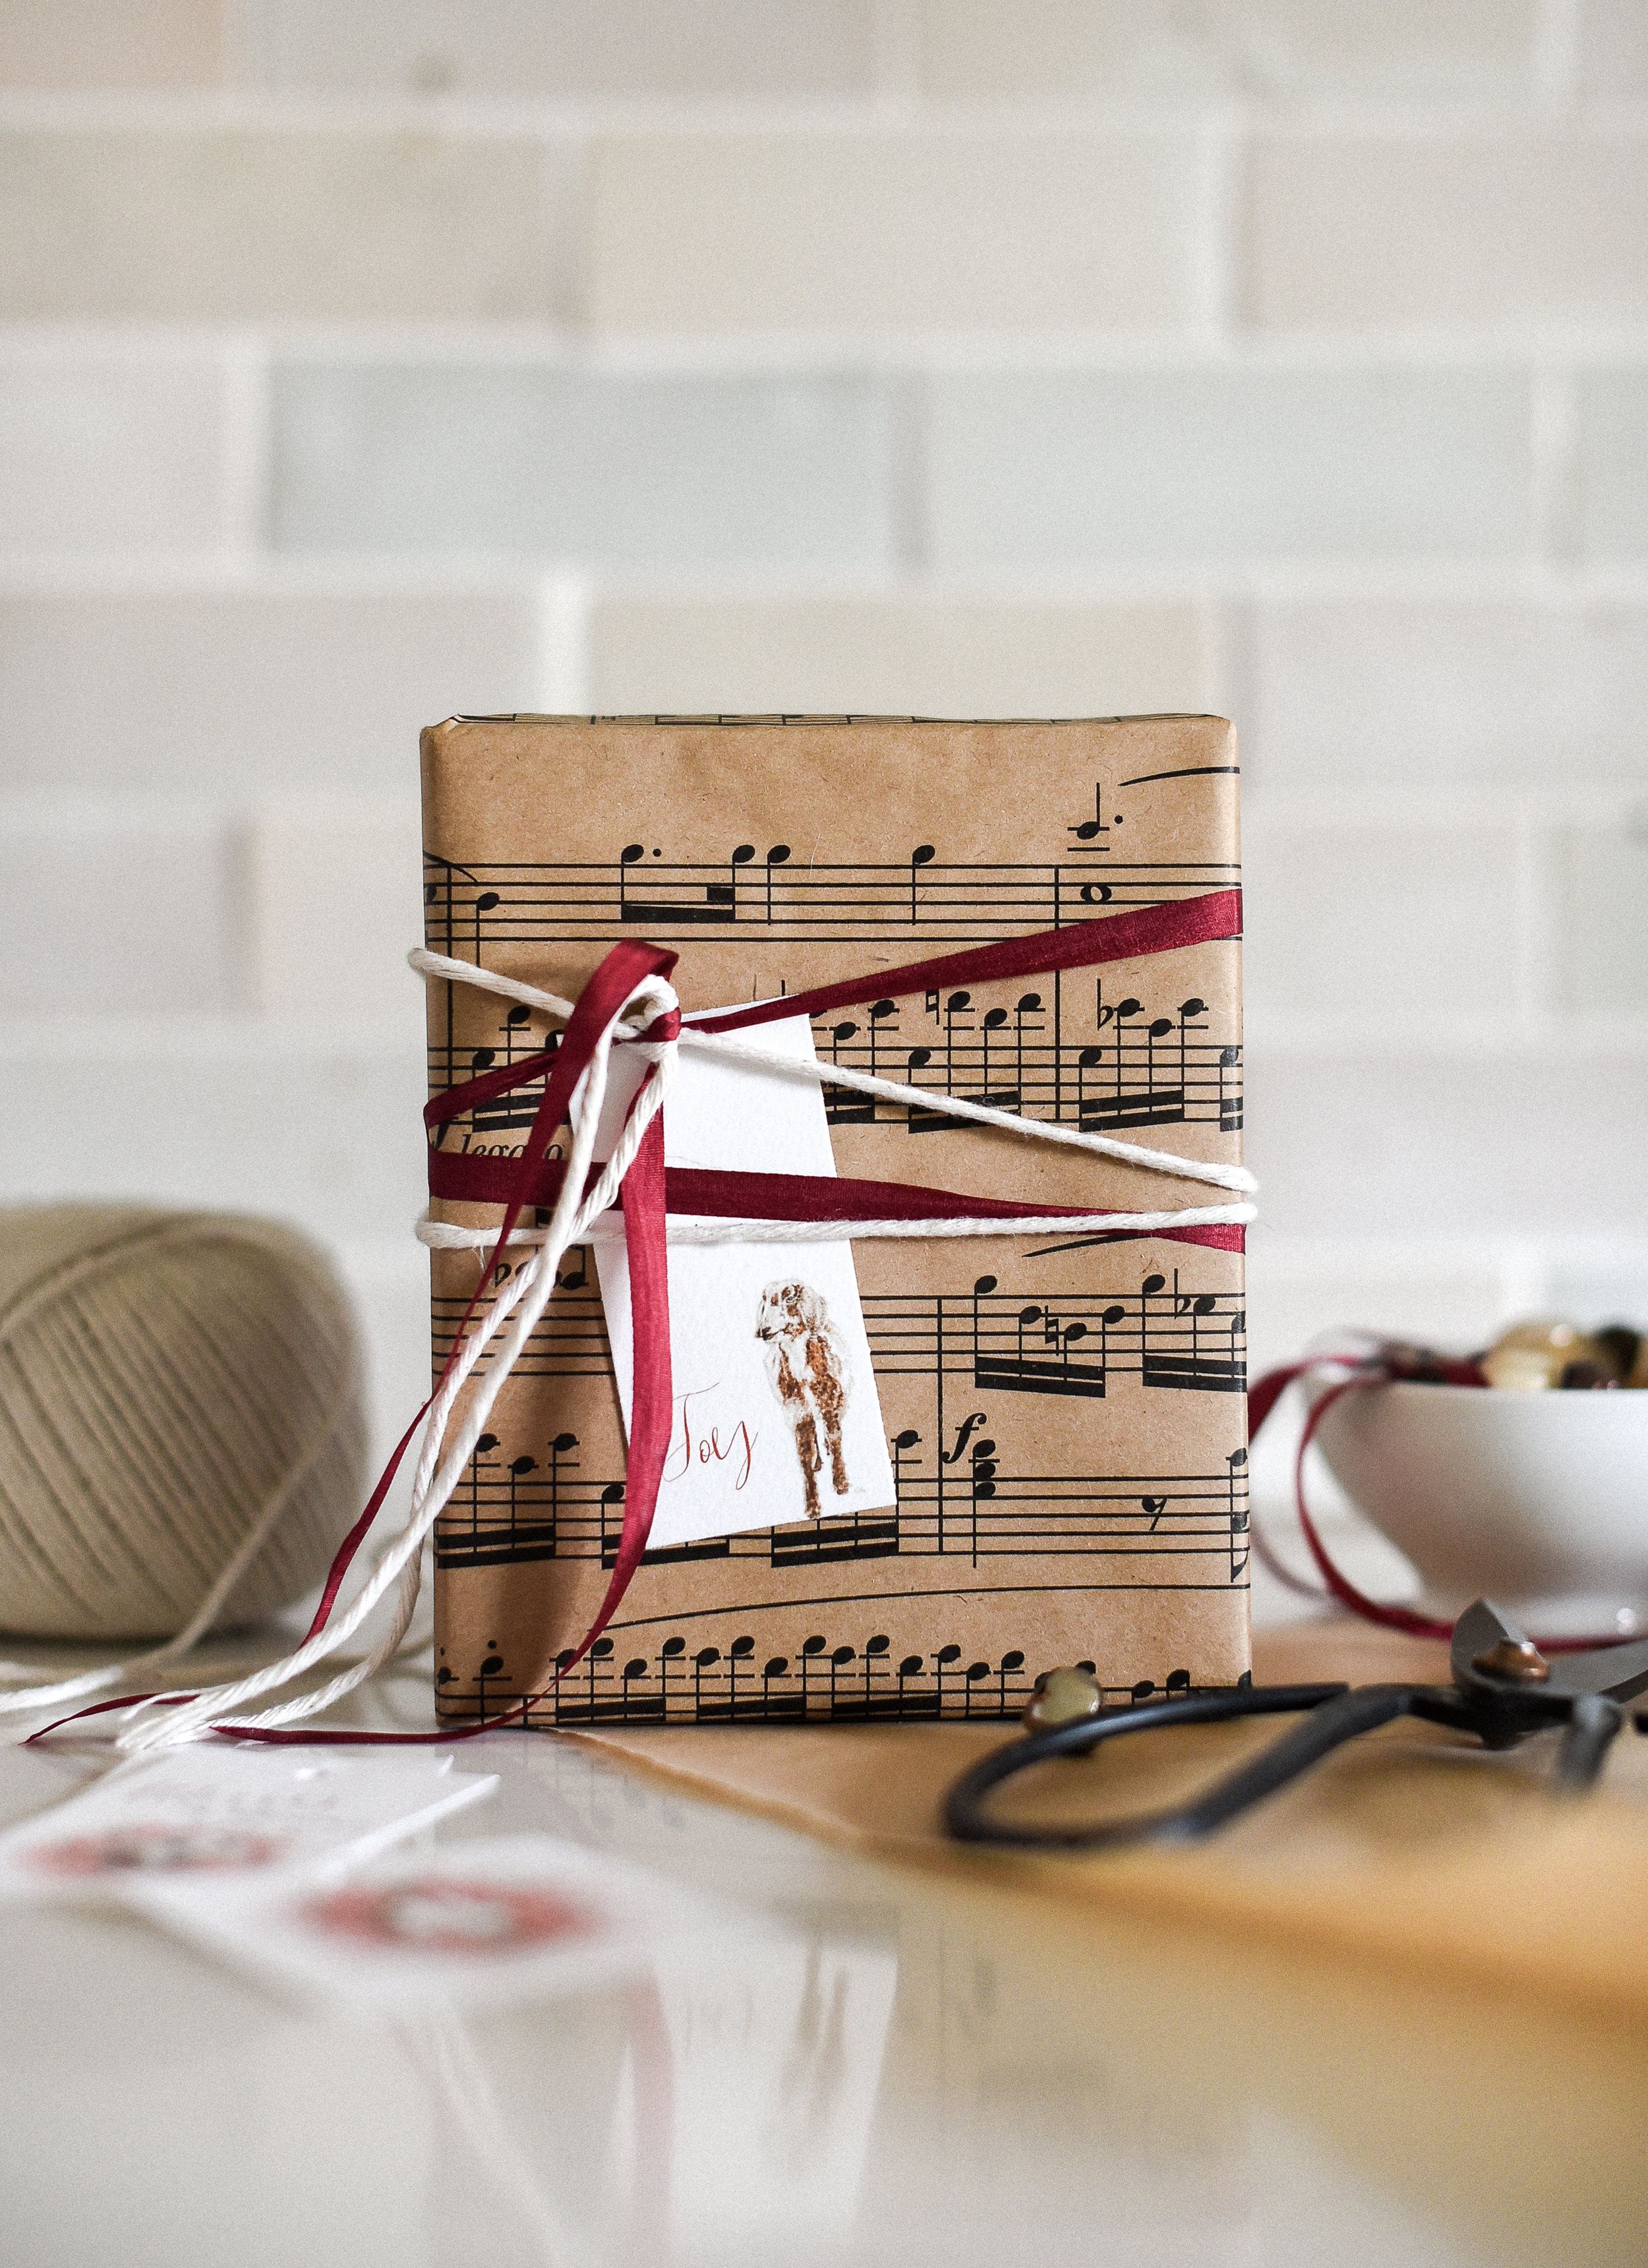 These farmhouse inspired Christmas tags are free! The goat is so darling, perfect for a farmhouse Christmas! boxwoodavenue.com #farmhousechristmas #christmaswrapping